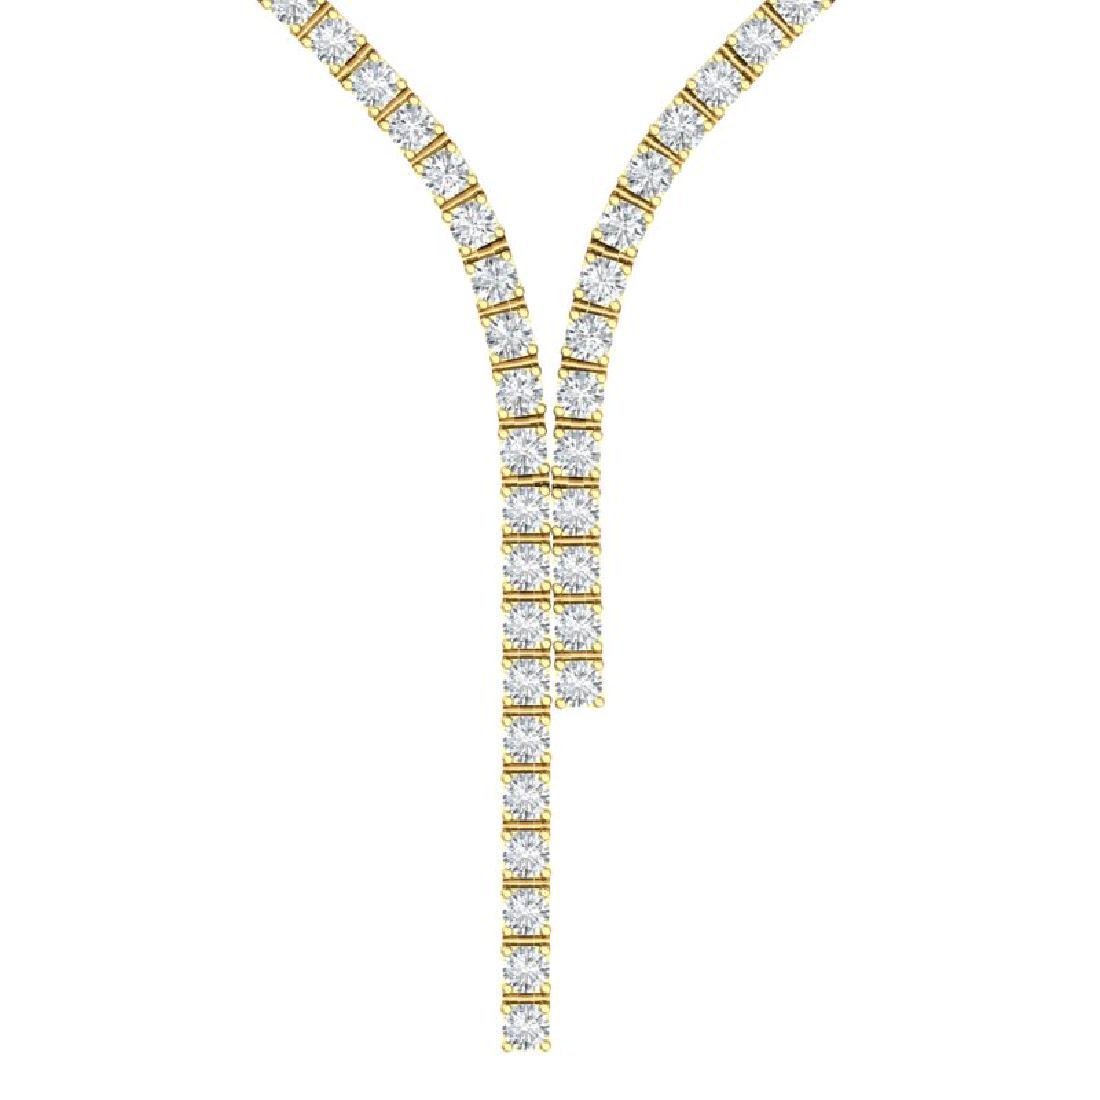 15 CTW Certified SI/I Diamond Necklace 18K Yellow Gold